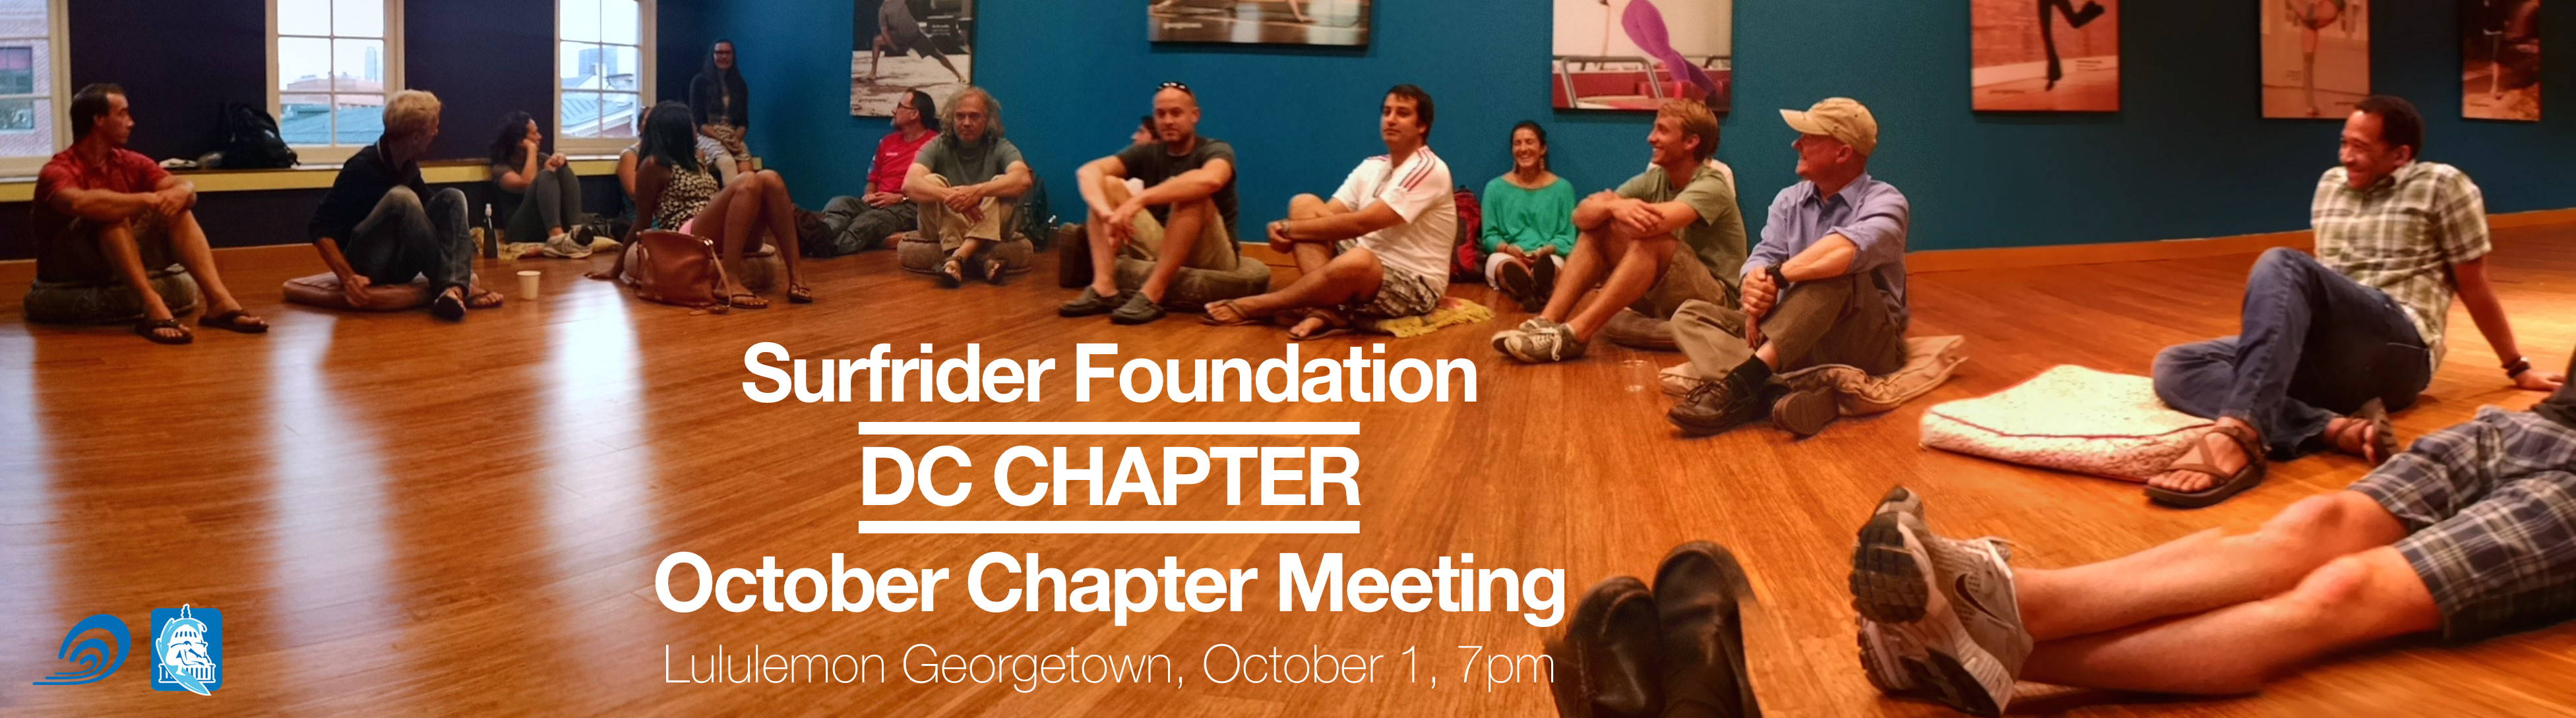 October Chapter Meeting This Wednesday